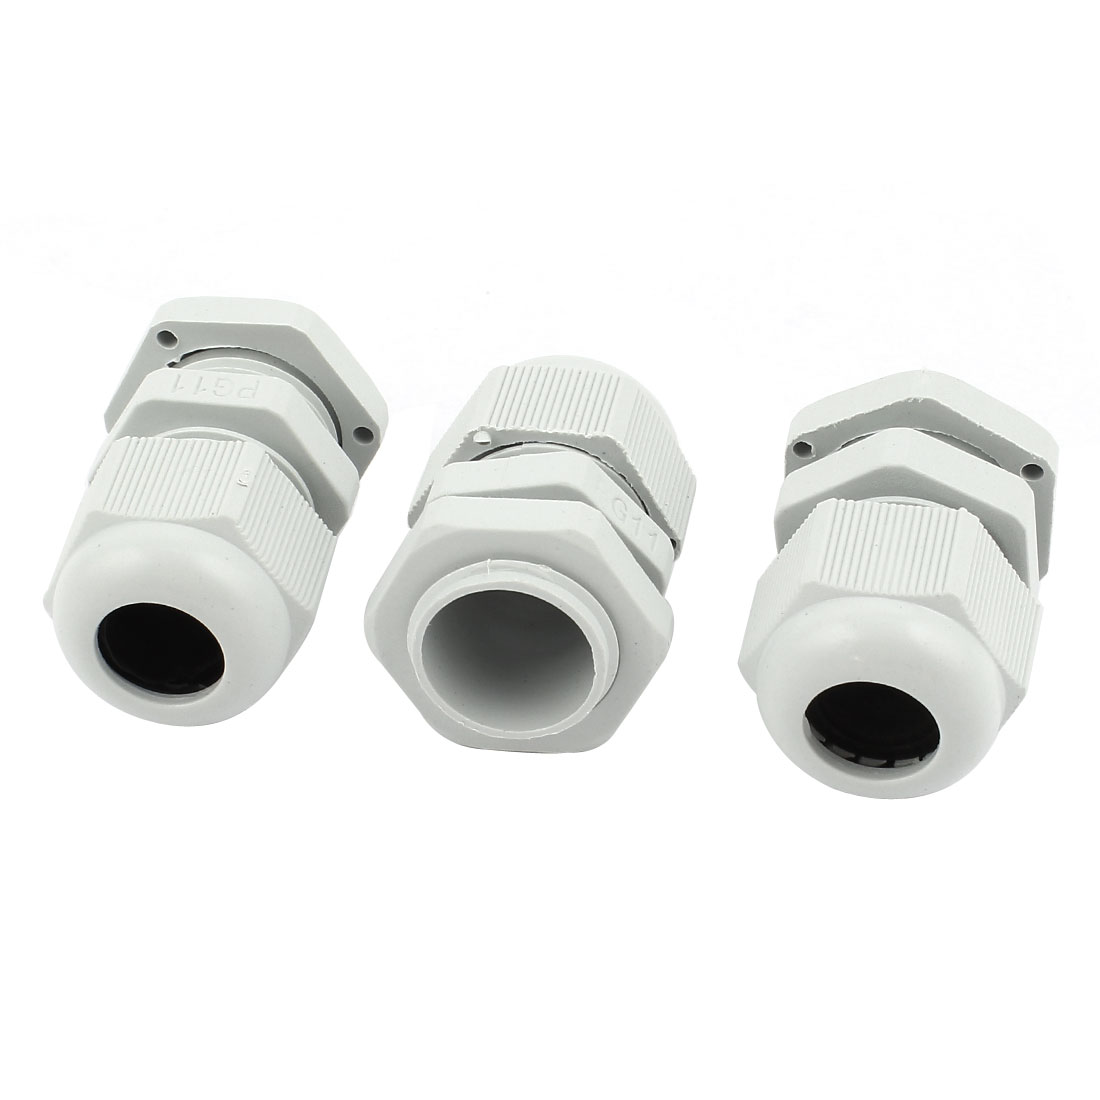 3 Pcs PG11 White Plastic 5-10mm Dia Waterproof Cable Glands Connectors